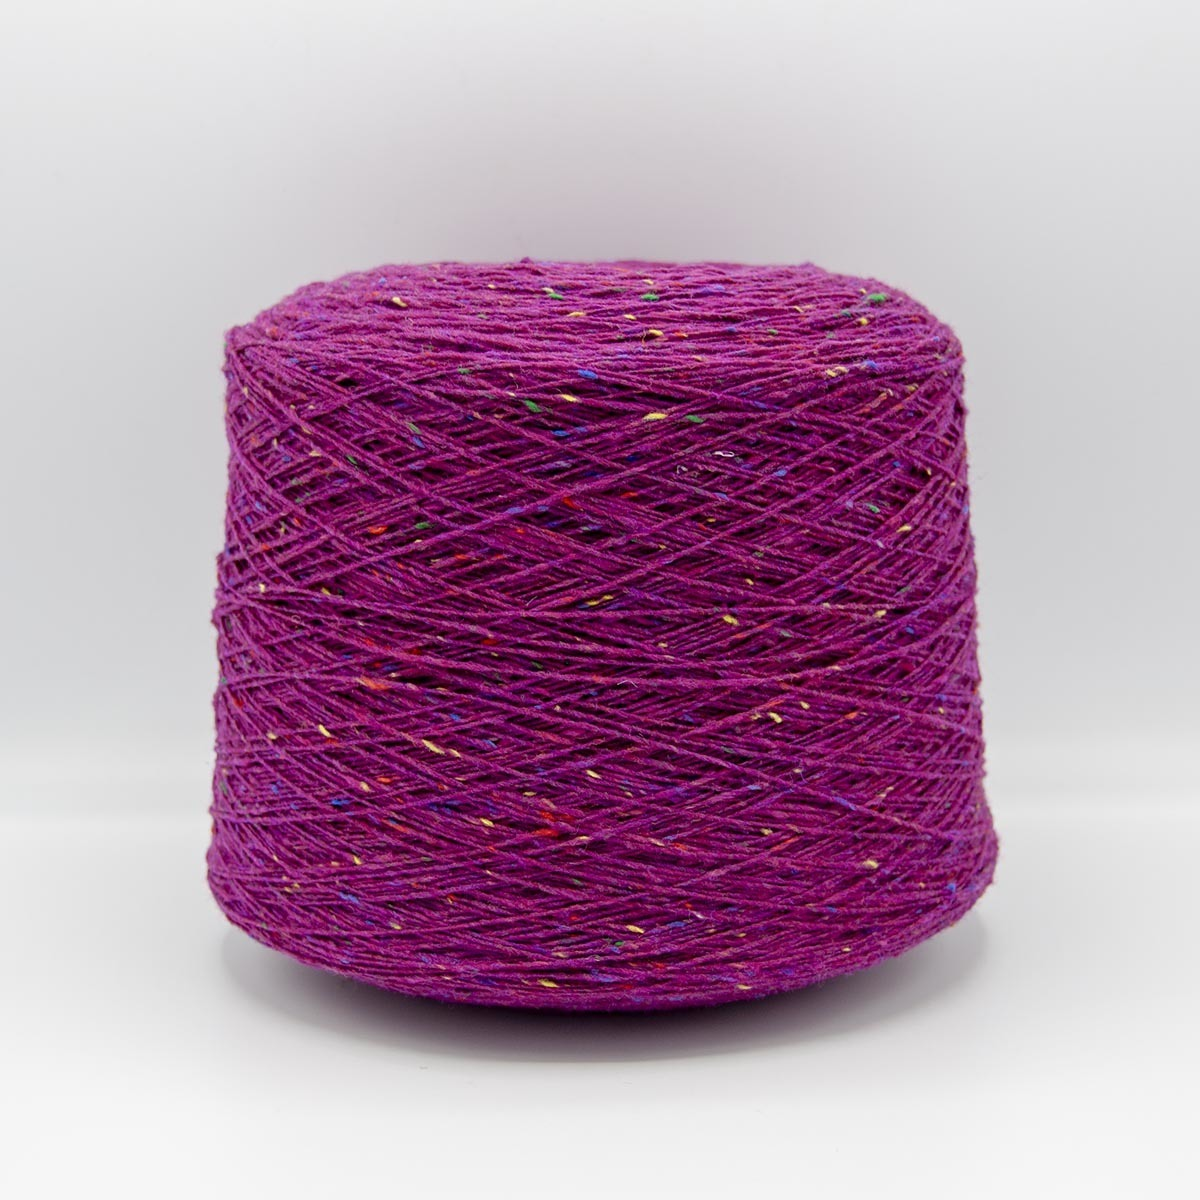 Knoll Yarns Soft Donegal (одинарный твид) - 5566